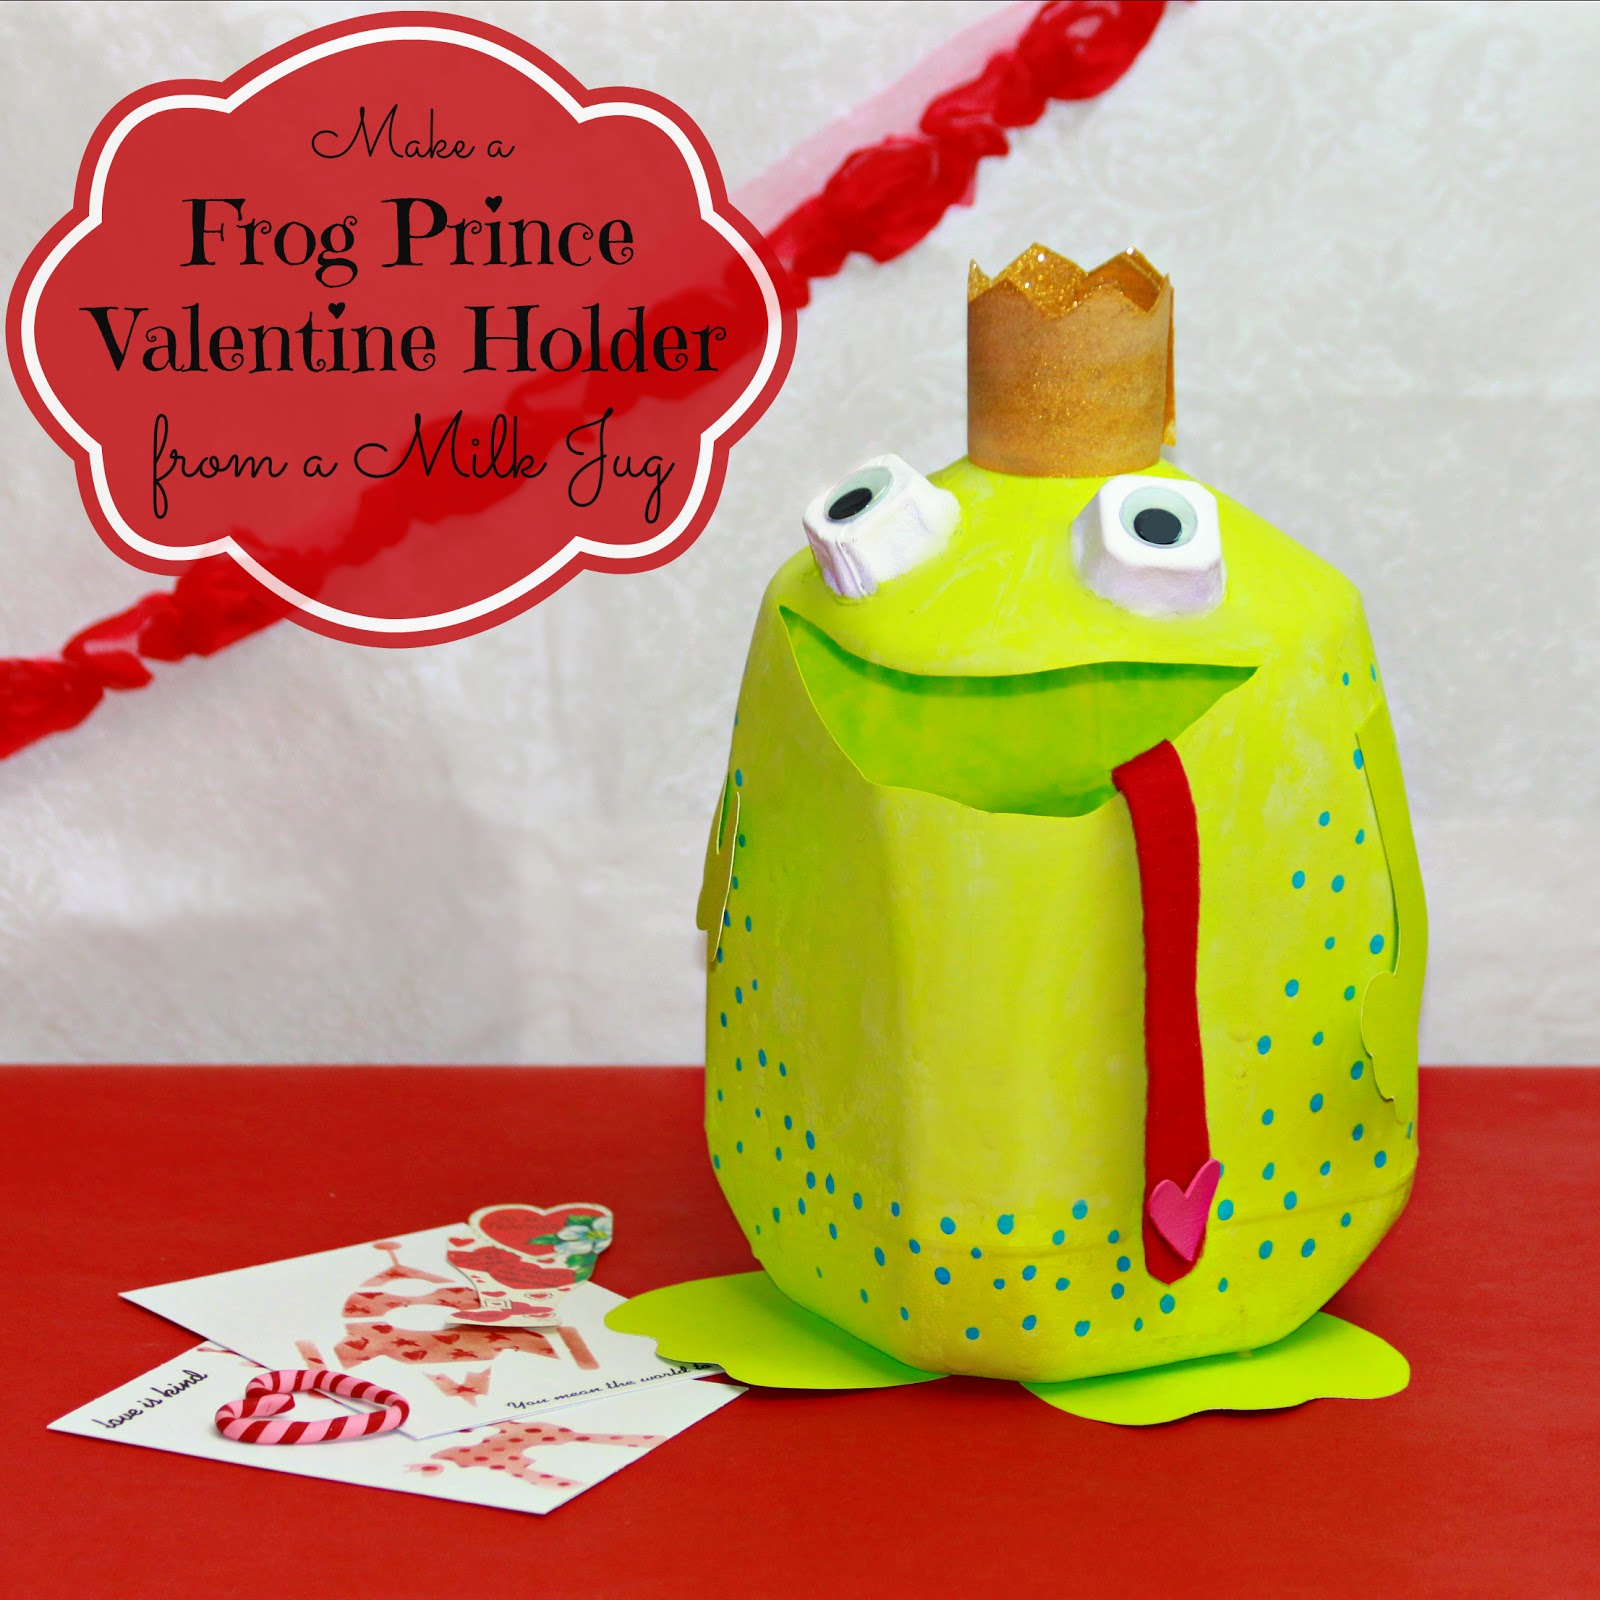 Beauteous Frog Prince Day Boxes Card Her Day Boxes Shopkins Valentines Day Boxes Kids Valentines Day Boxes inspiration Valentines Day Boxes